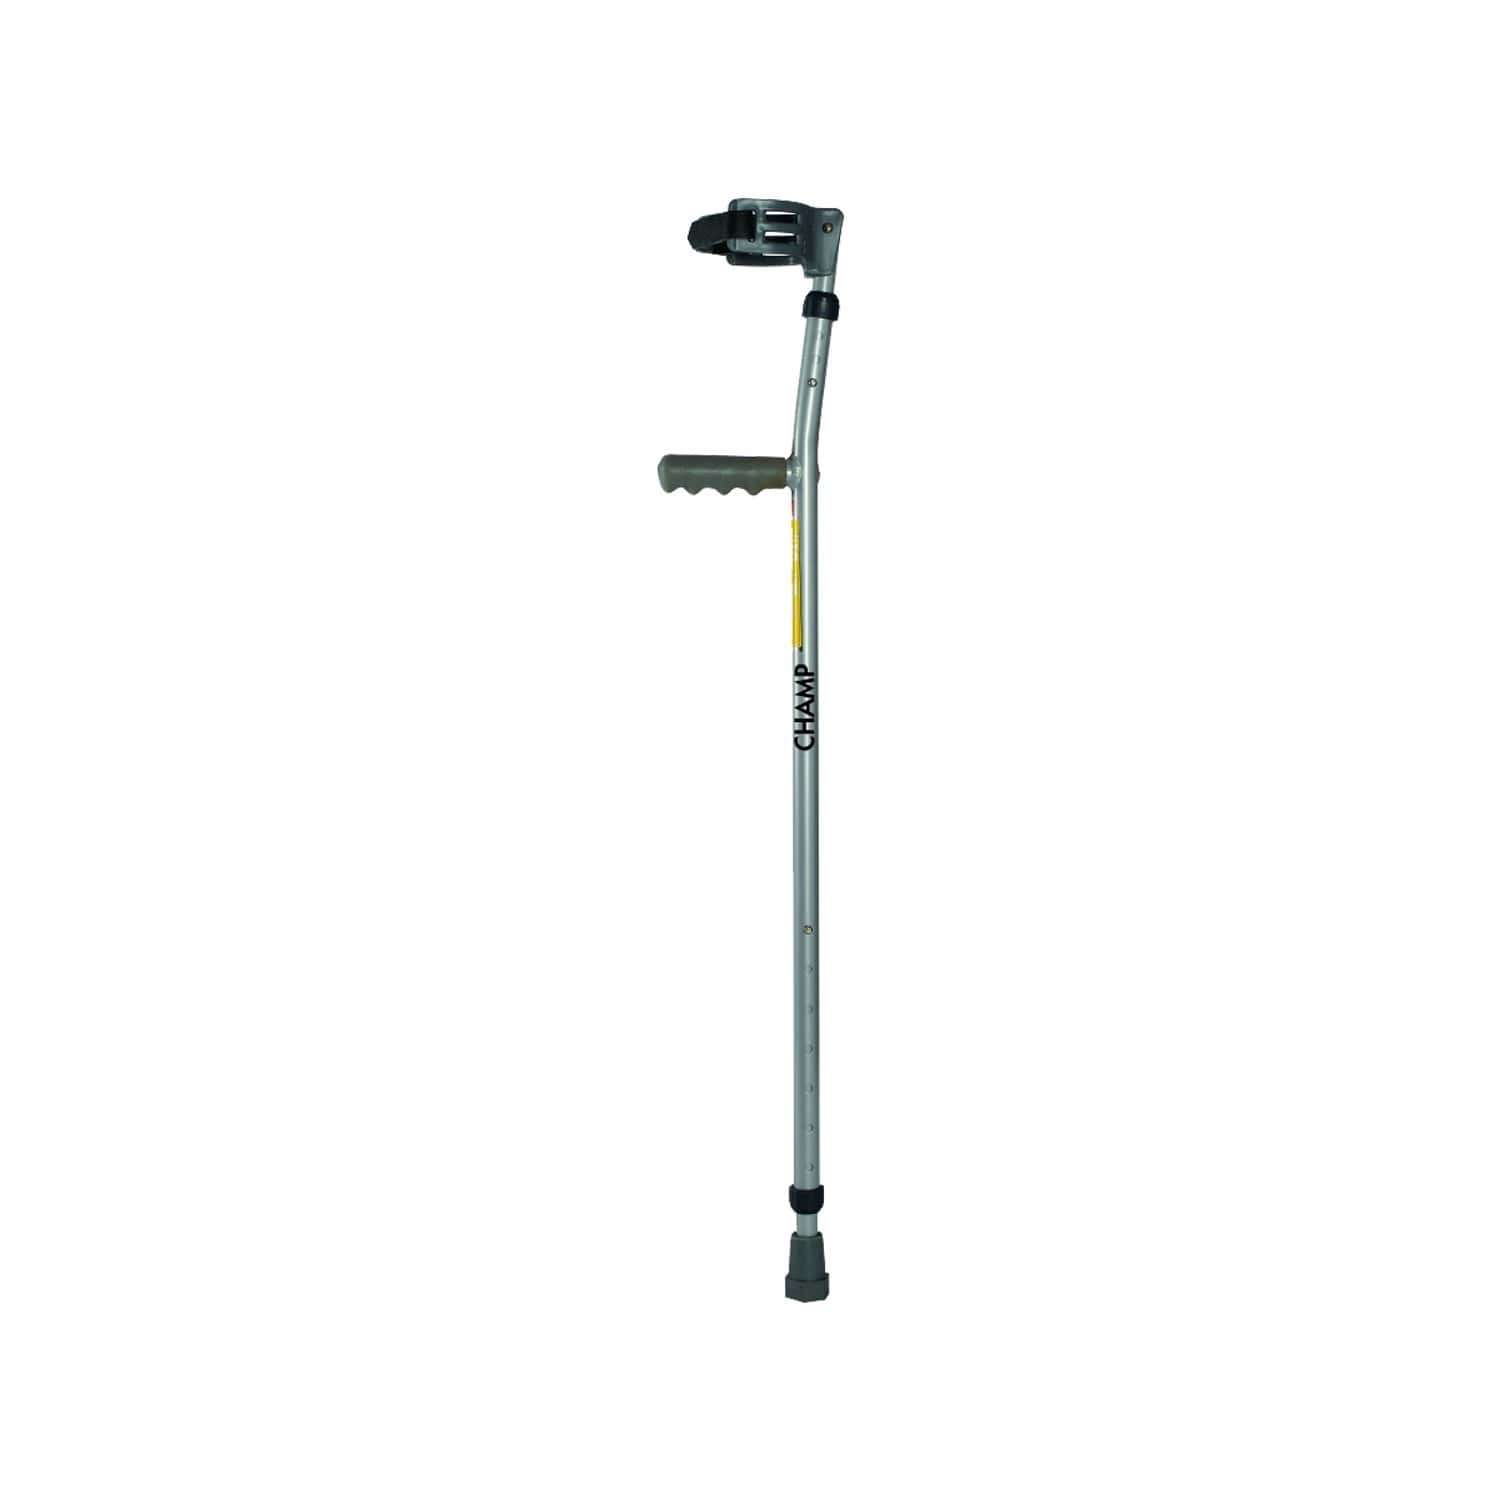 Vissco Champ Max Elbow Crutch - Fixed Handle